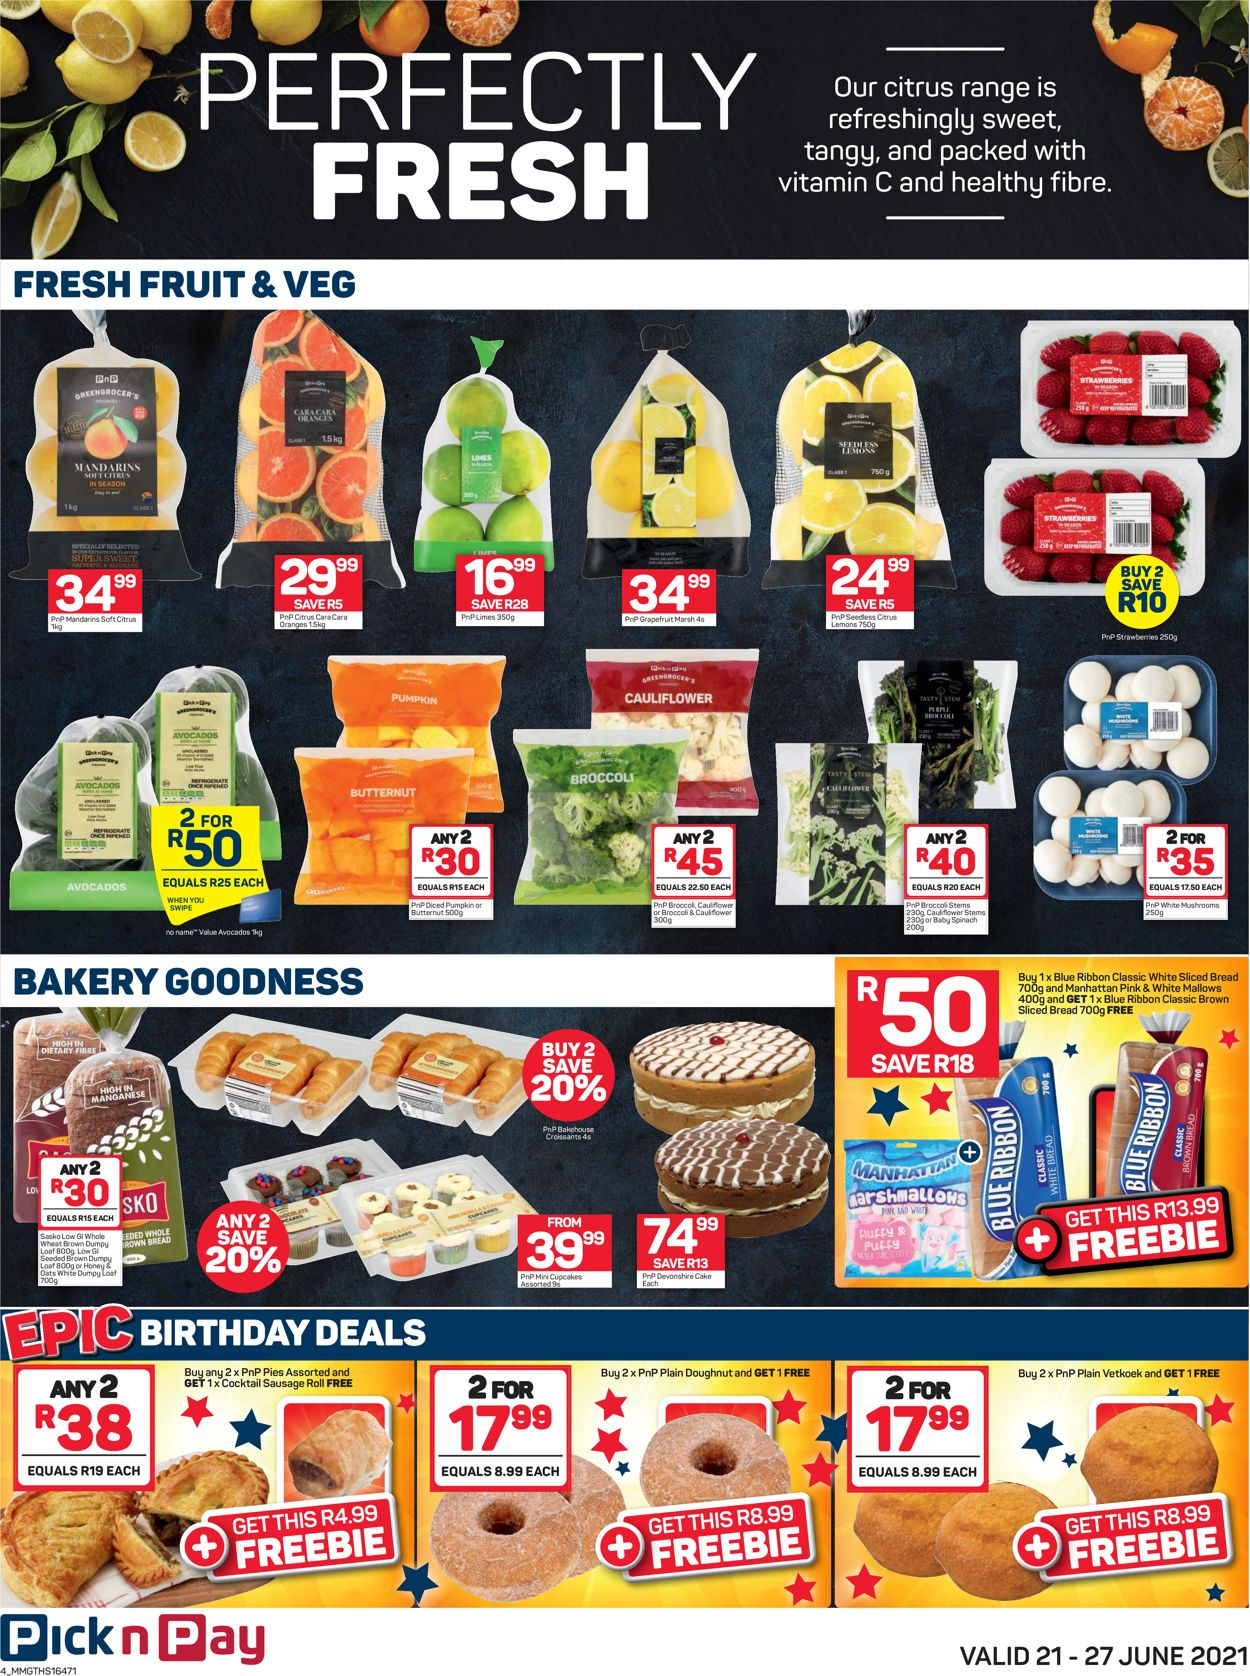 Pick n Pay Catalogue - 2021/06/21-2021/06/27 (Page 4)